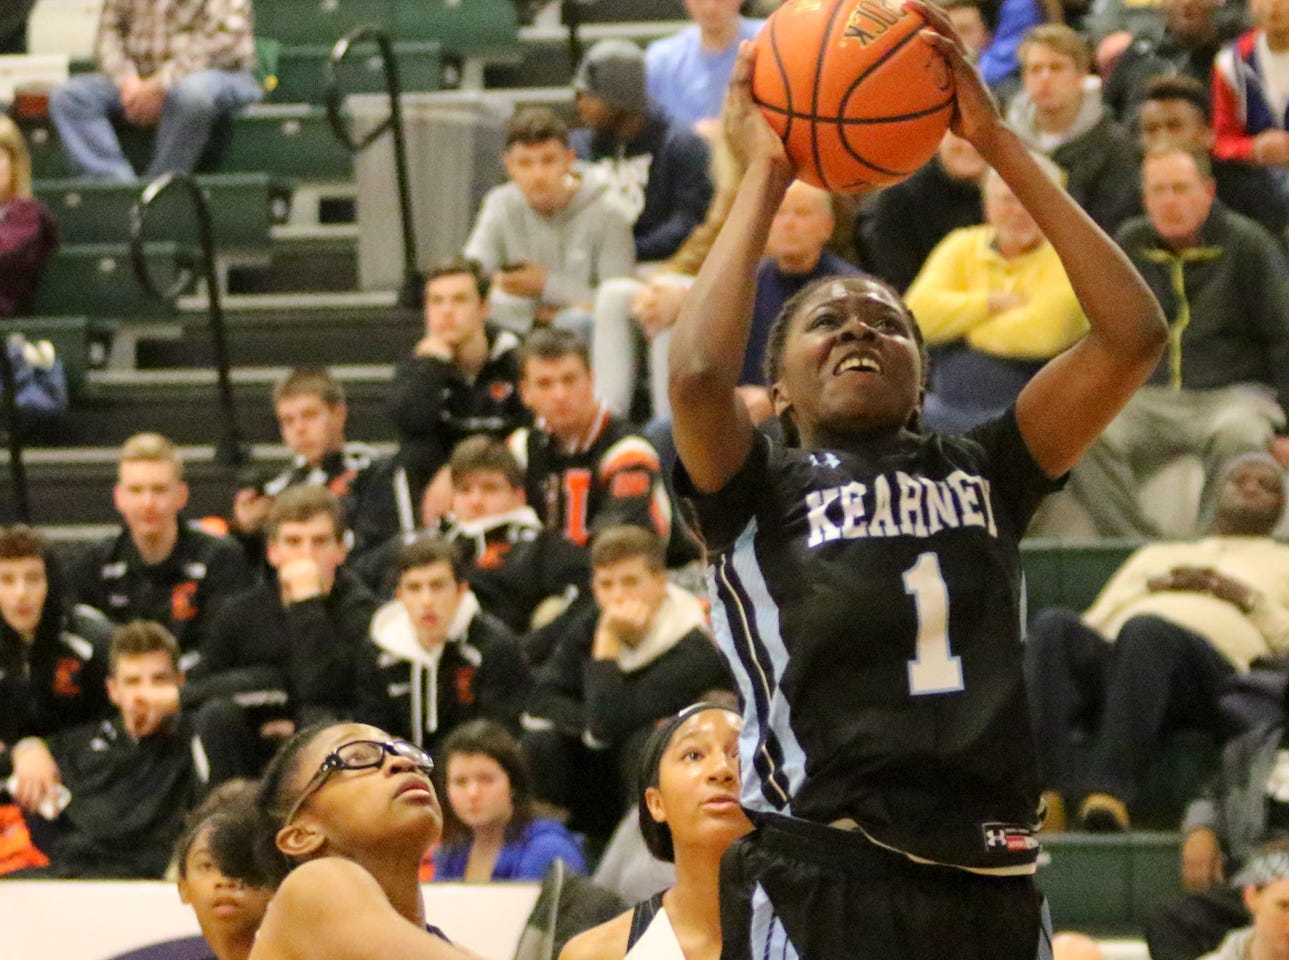 Lytoya Baker of Bishop Kearney goes up for a shot against Cardinal O'Hara in the girls championship game at the Josh Palmer Fund Elmira Holiday Inn Classic on Dec. 30, 2018 at Elmira High School.